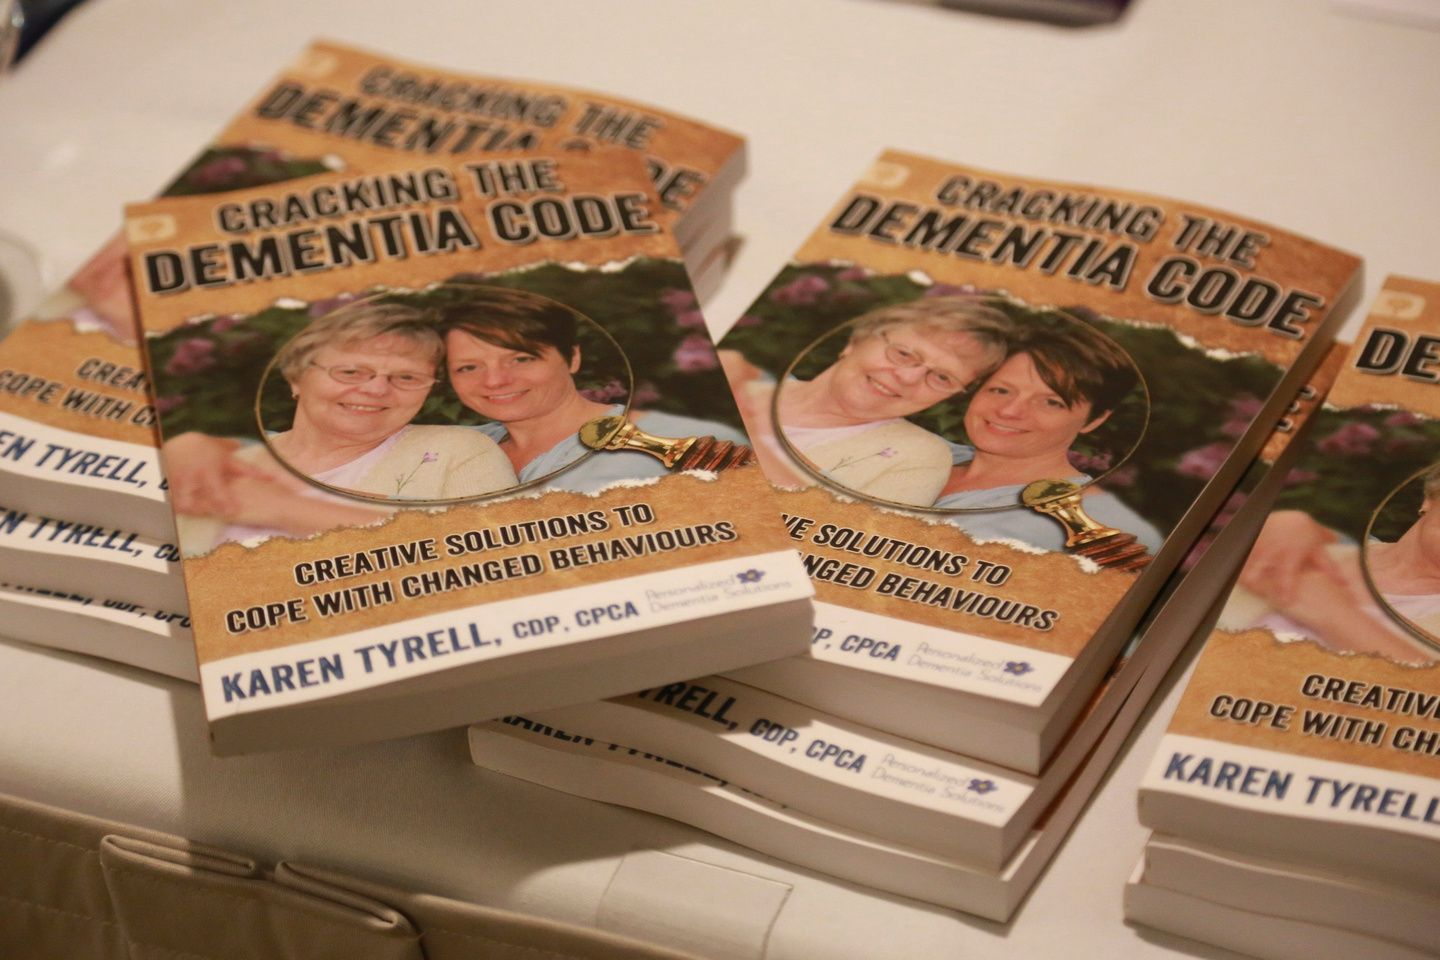 Newly released book cracking the dementia code to